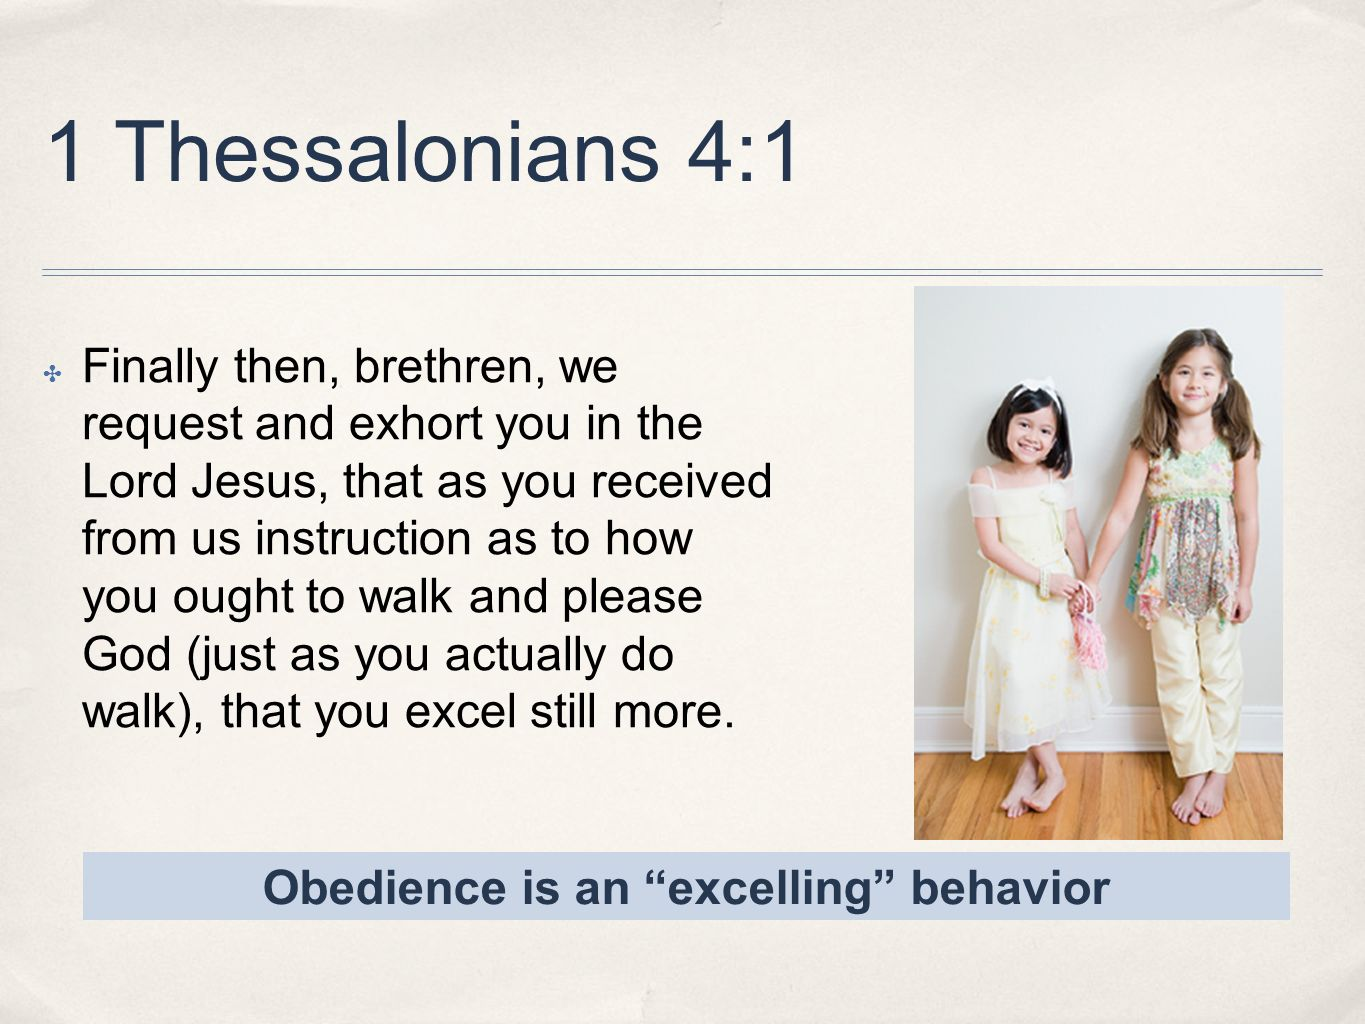 Obedience is an excelling behavior